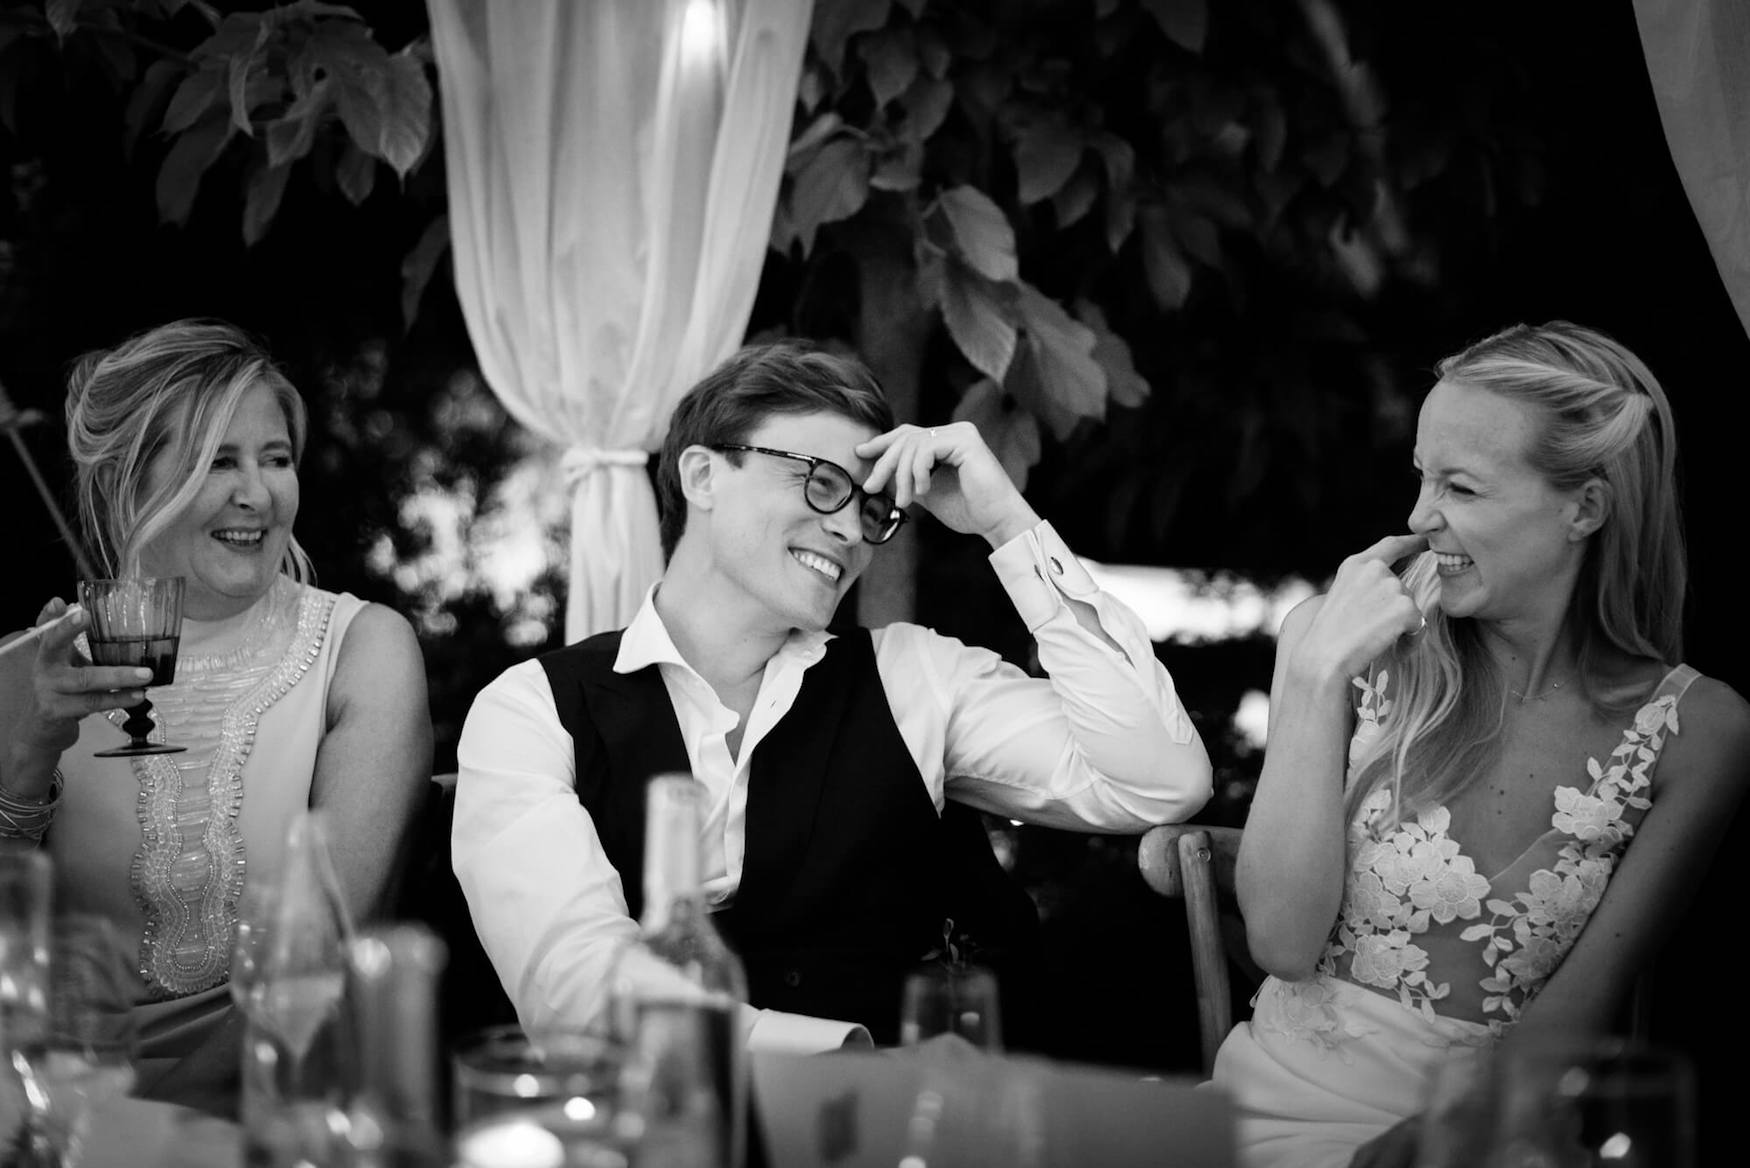 groom bride best men speeches dinner laughter